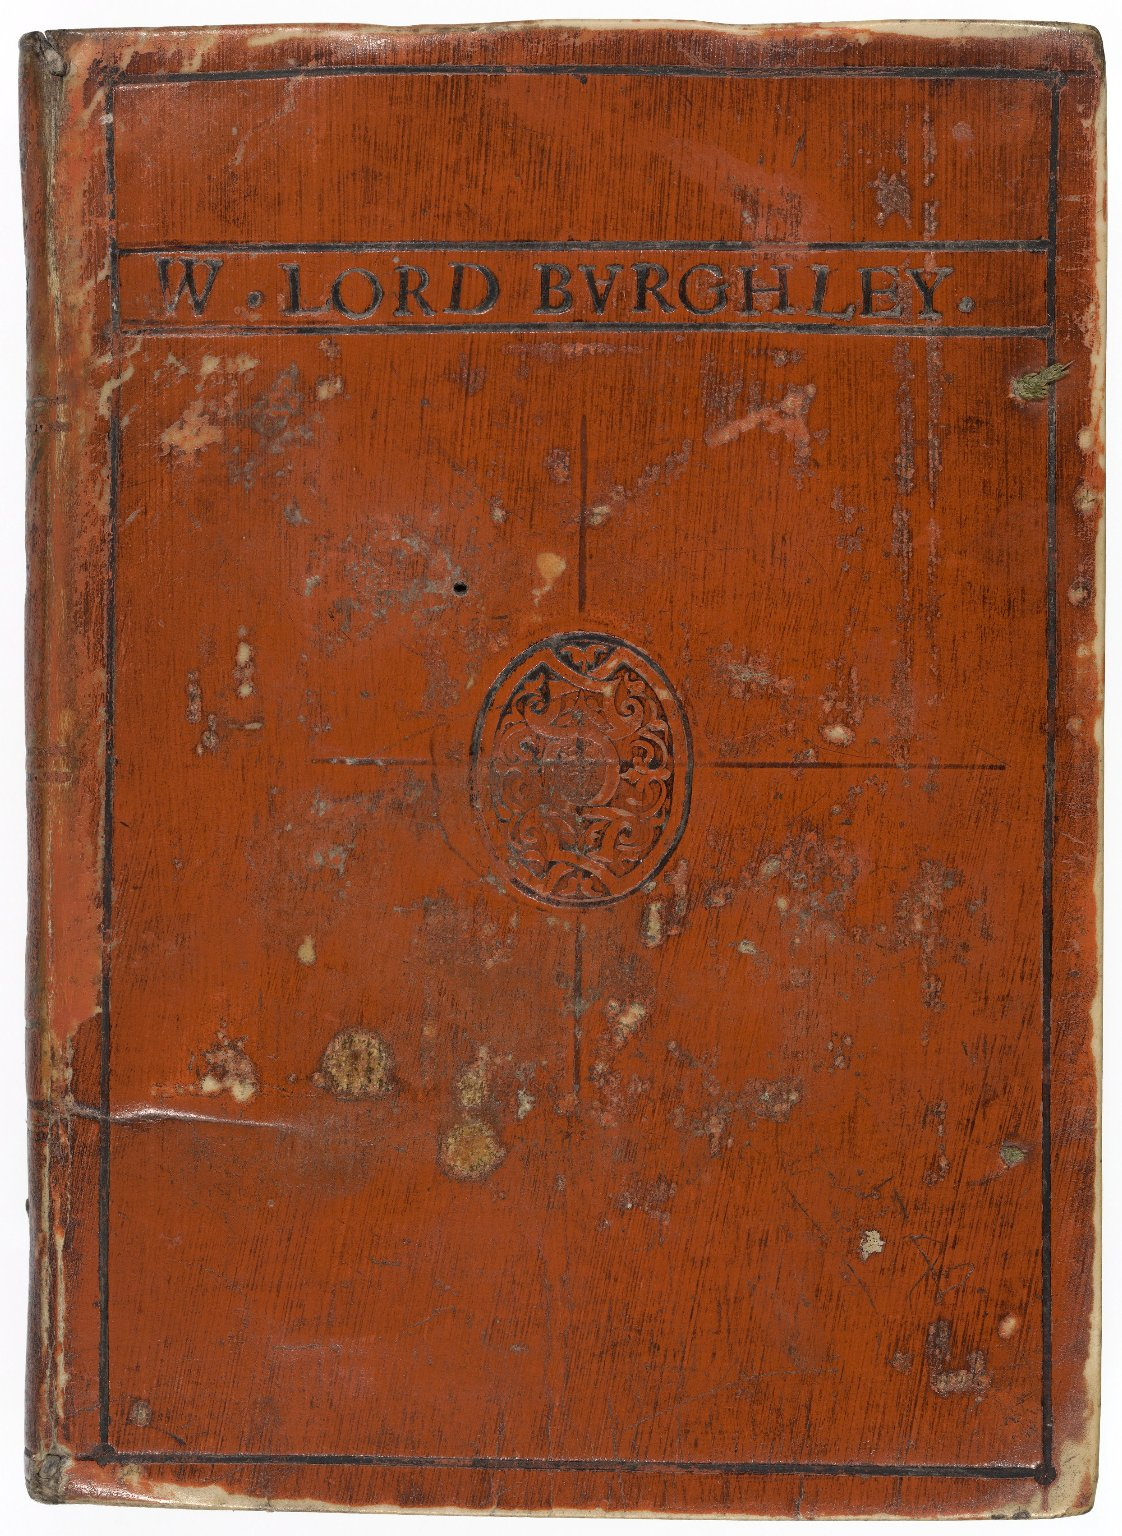 Front cover, STC 14373.